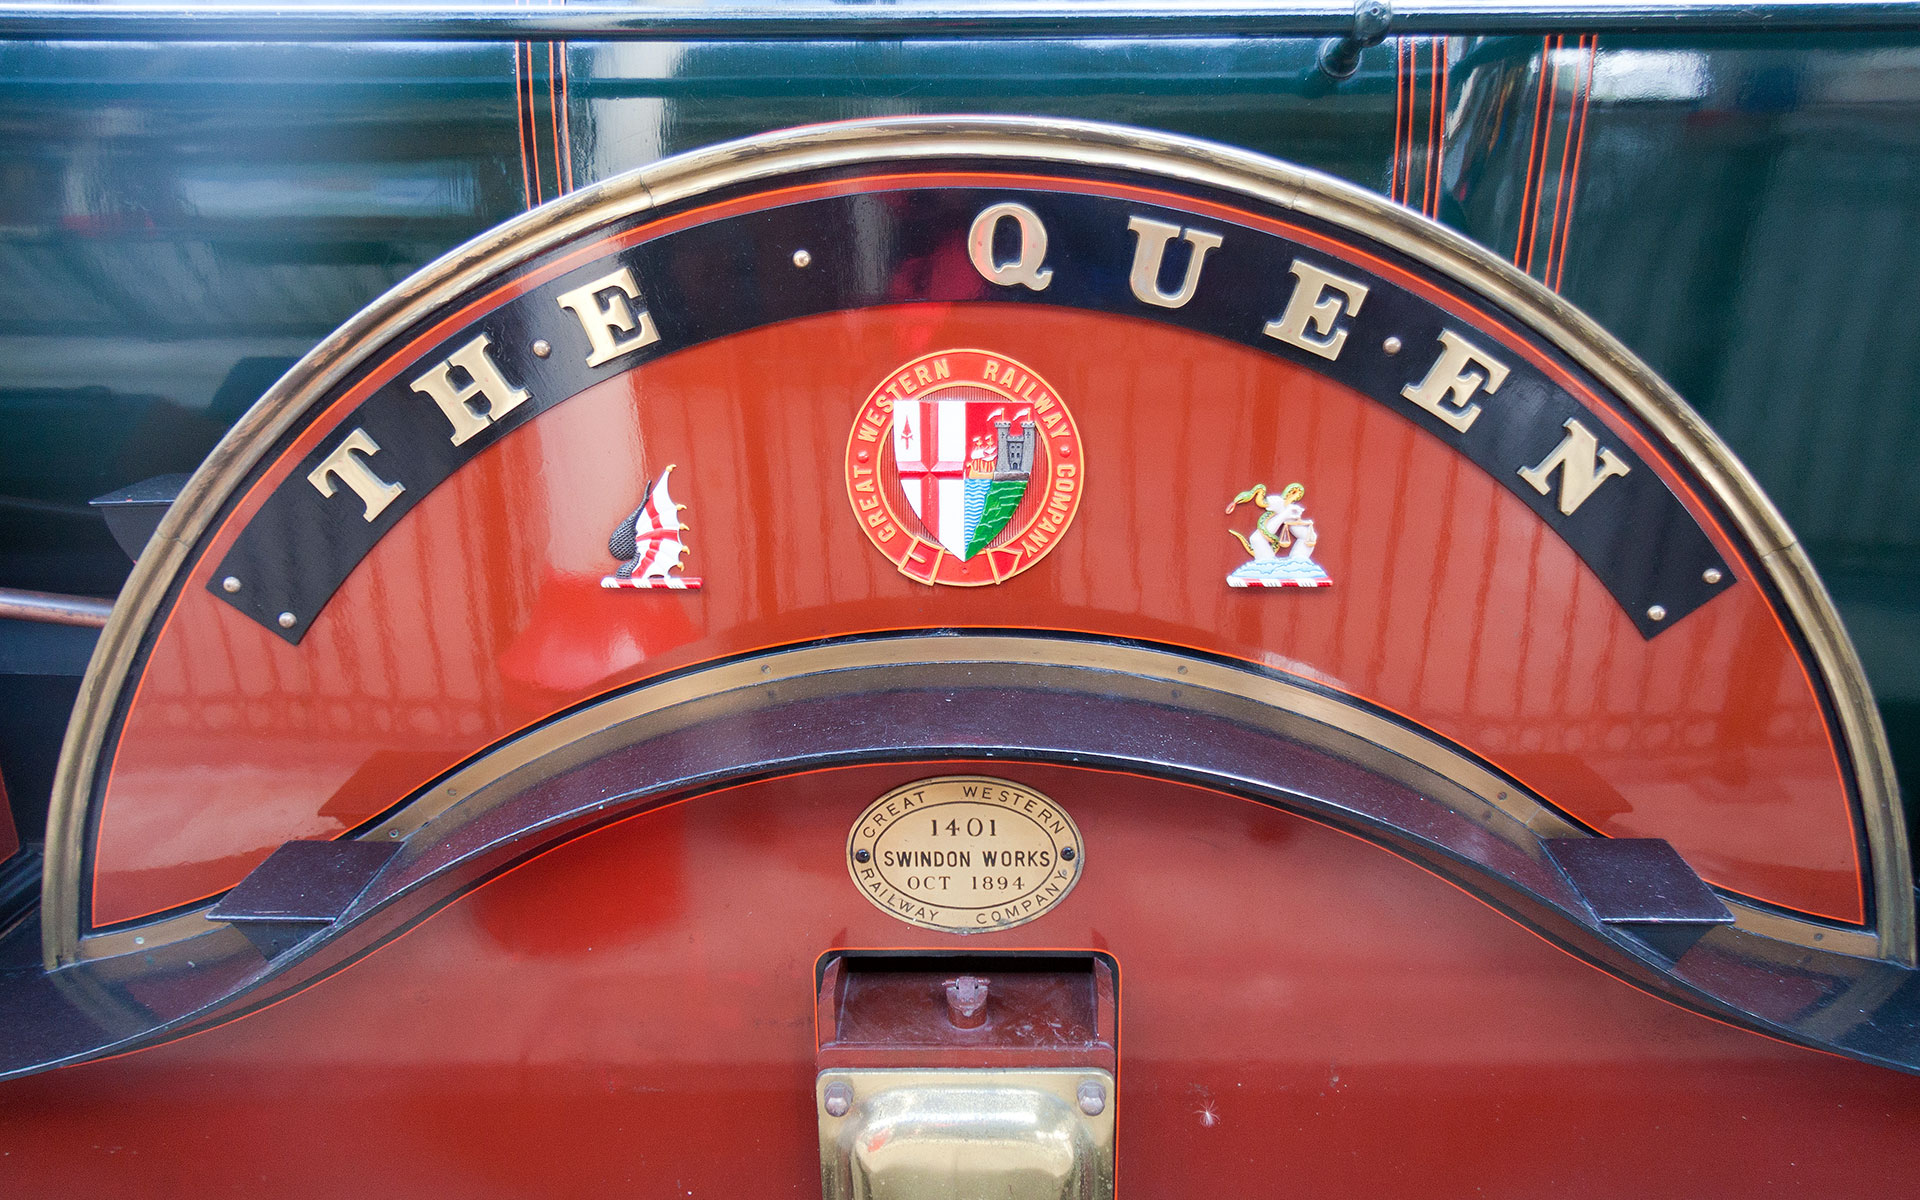 GWR locomotive 3041 gave sterling service on routes out of Paddington from 1894 until 1912. The engine was originally named Emlyn, but then renamed The Queen in 1897. A replica of the locomotive now stands at Windsor & Eton station (photo © Khellon / dreamstime.com).